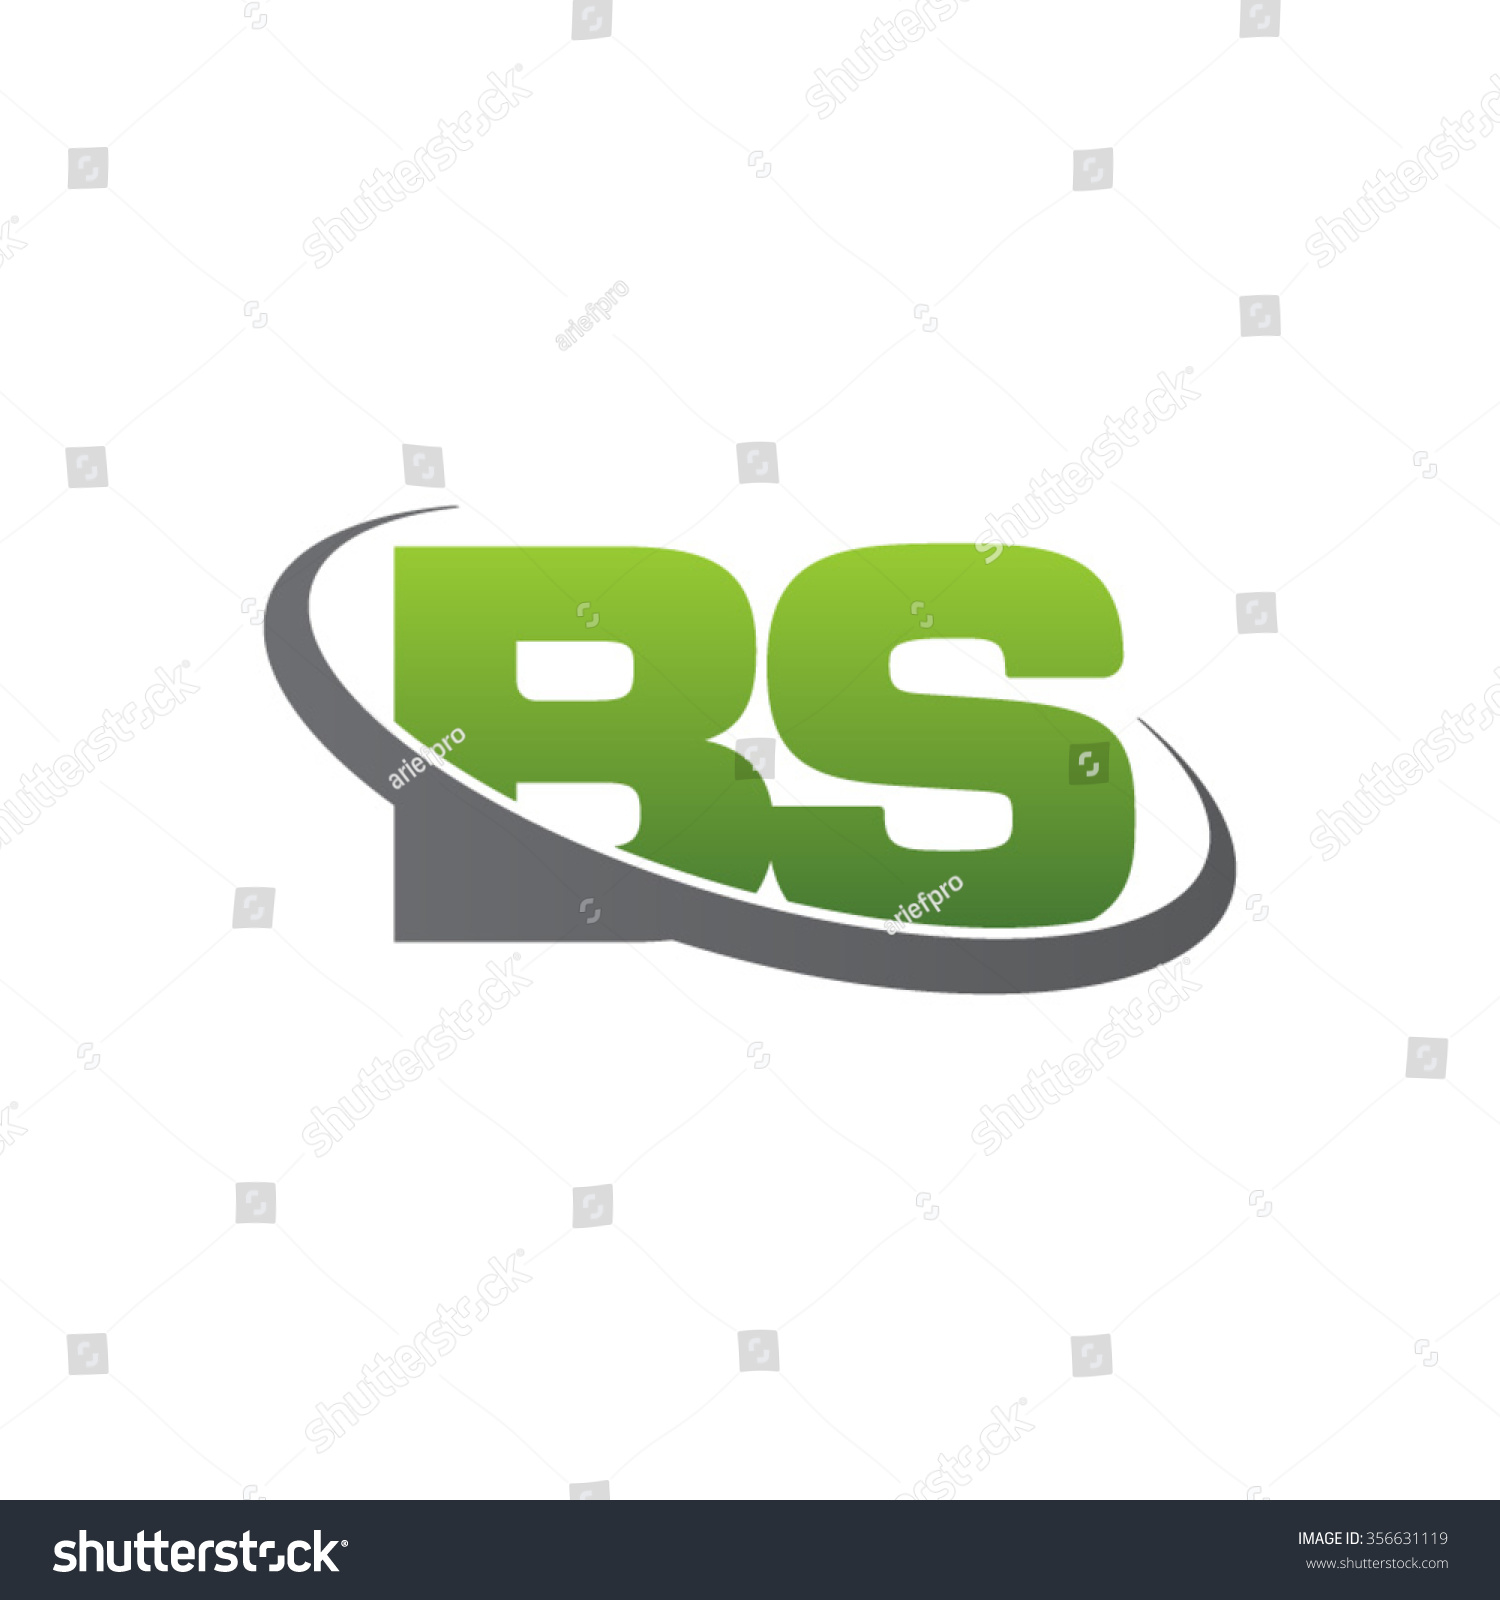 initial bs swoosh ring company logo green gray stock vector illustration 356631119 shutterstock. Black Bedroom Furniture Sets. Home Design Ideas